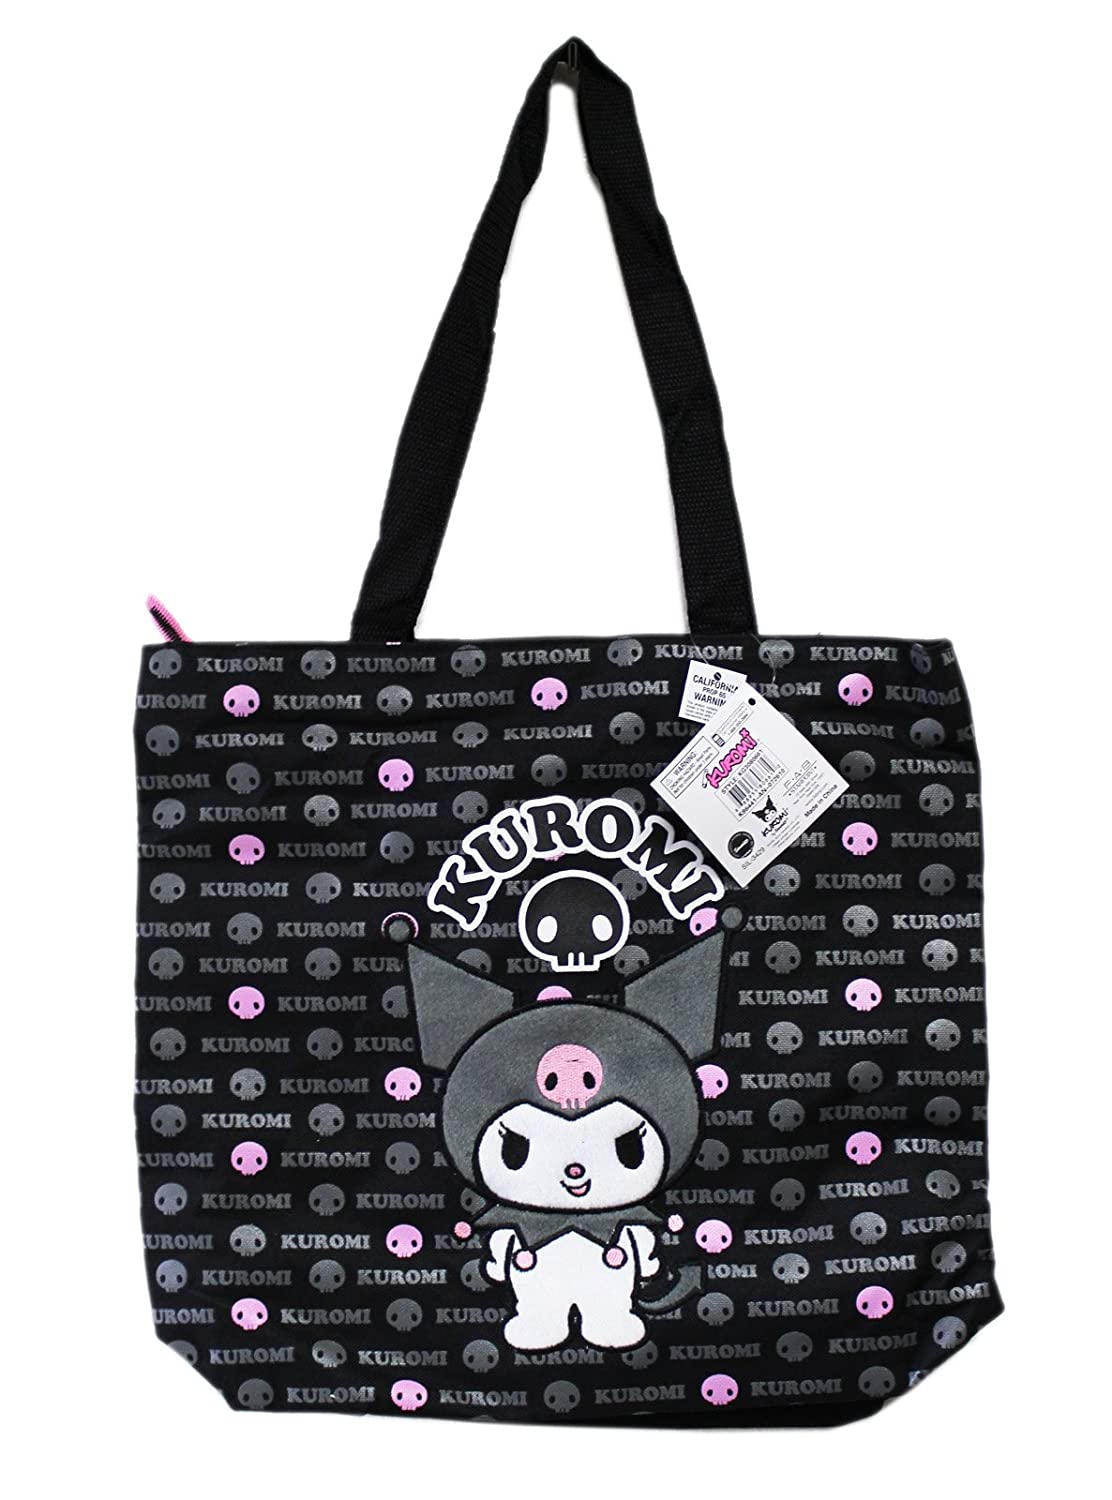 amazoncom black and pink kuromi tote bag large tote bag travel totes luggage beauty - Large Tote Bags